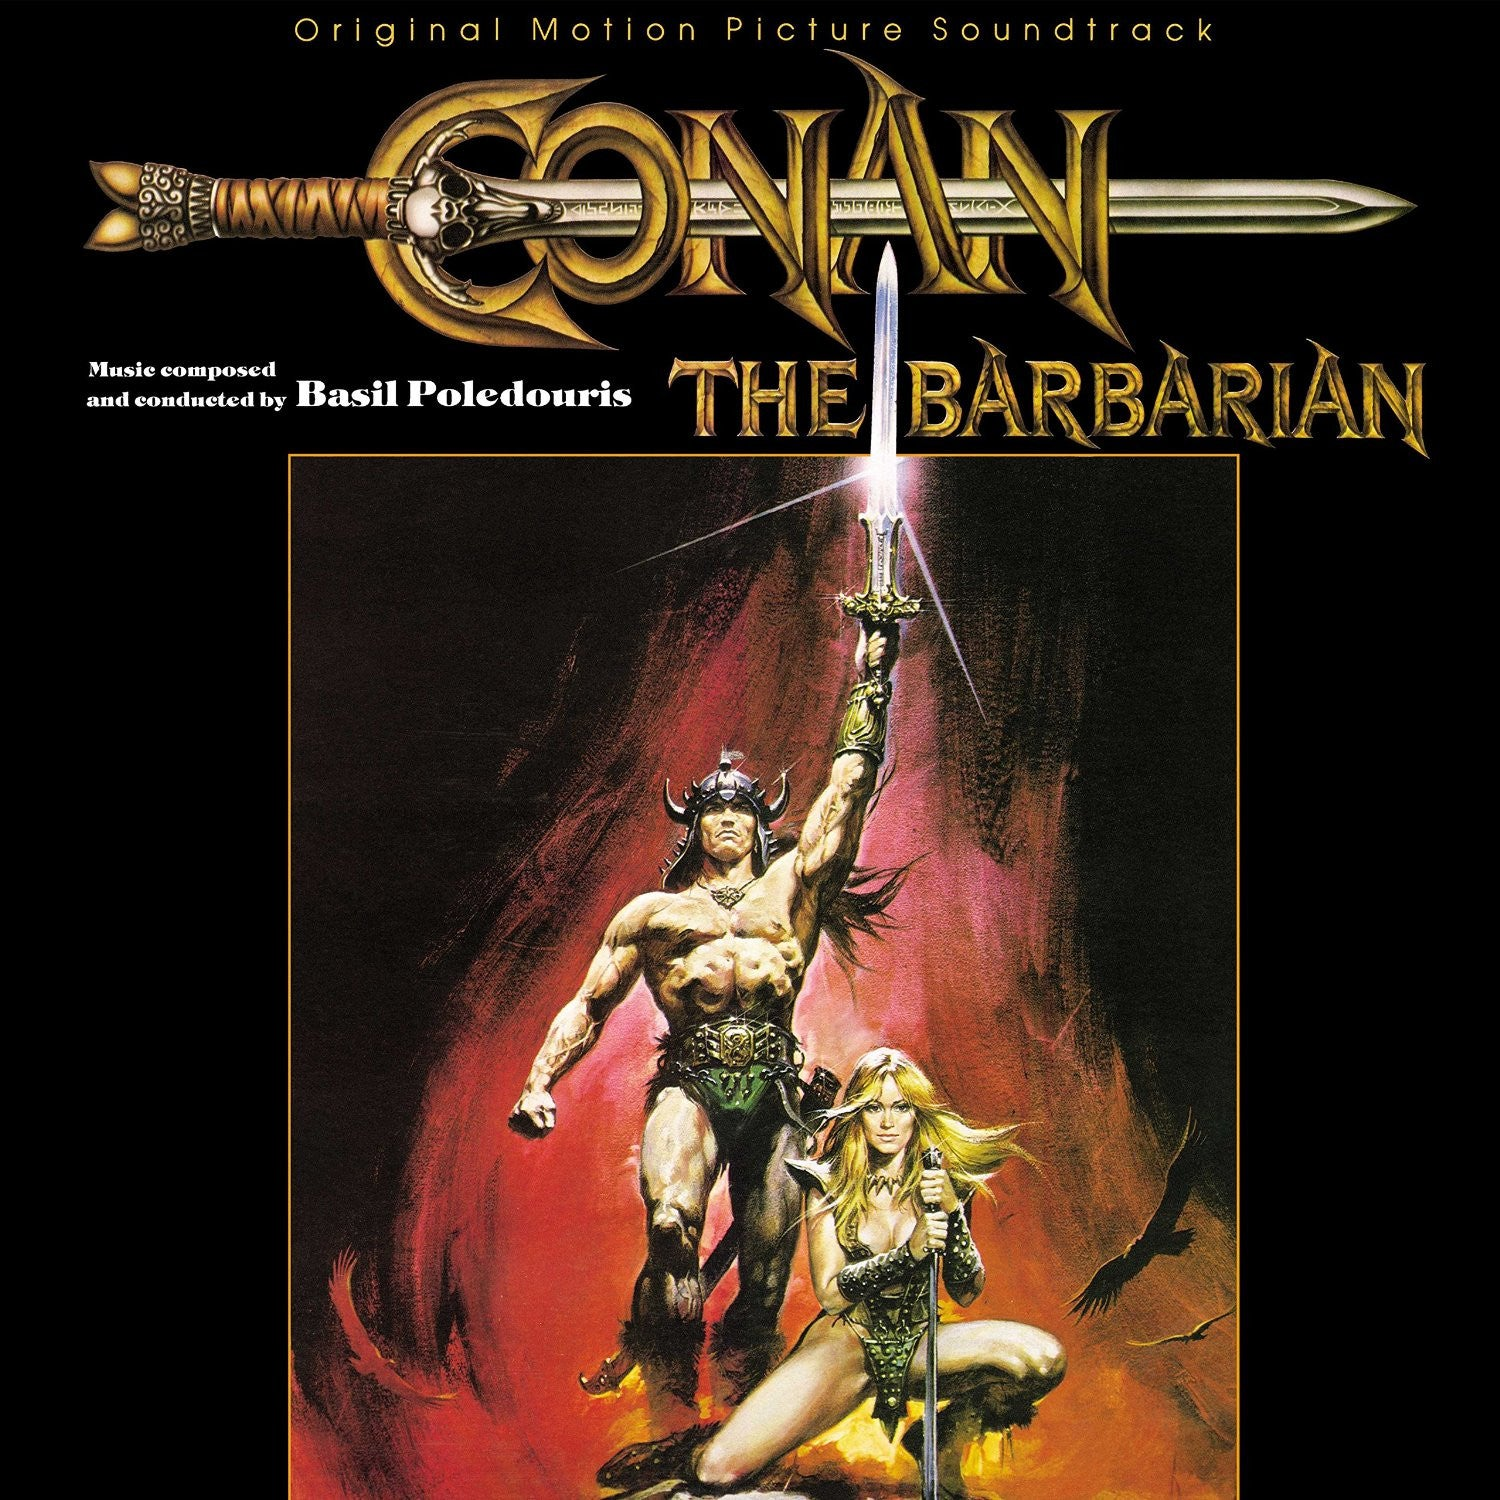 OST - Conan The Barbarian by Basil Poledouris LP (Reissue)